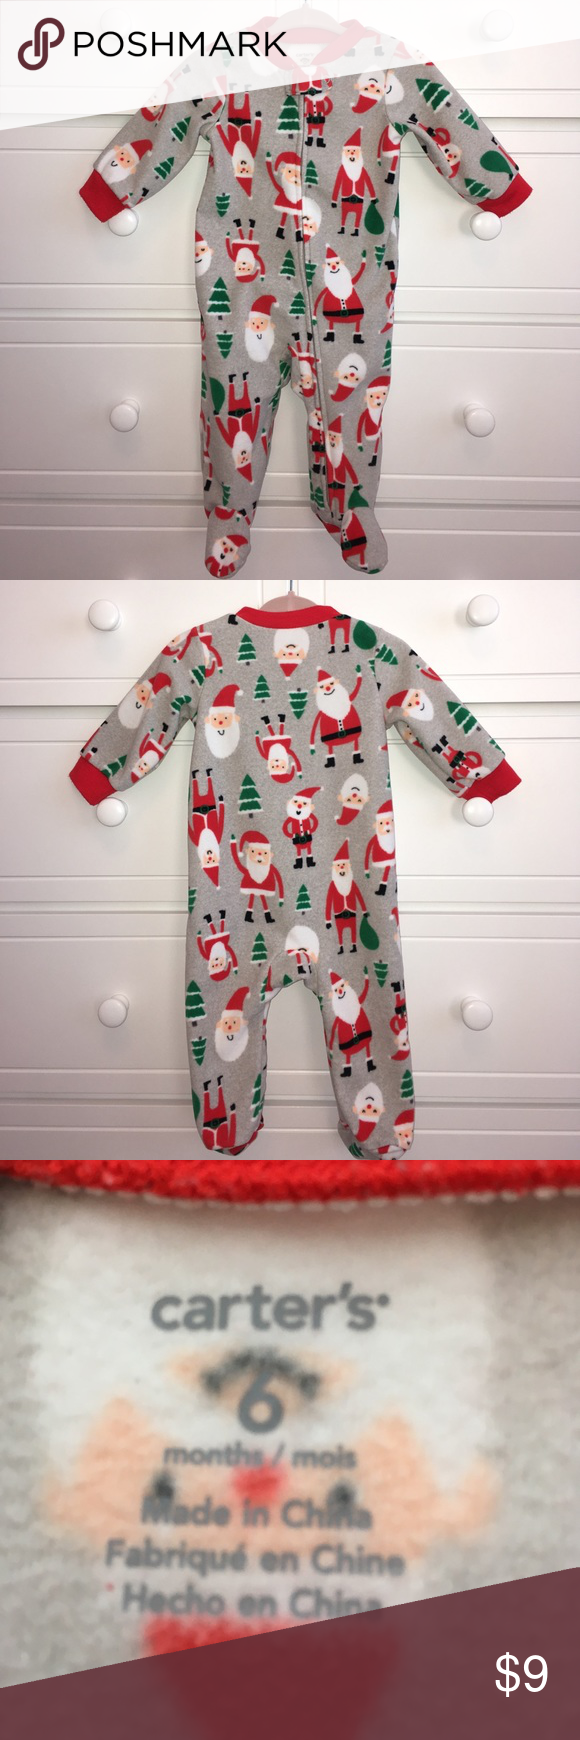 9cea996b12f8 🎄Carter s Christmas PJs🎄 Used - excellent condition. Carter s ...